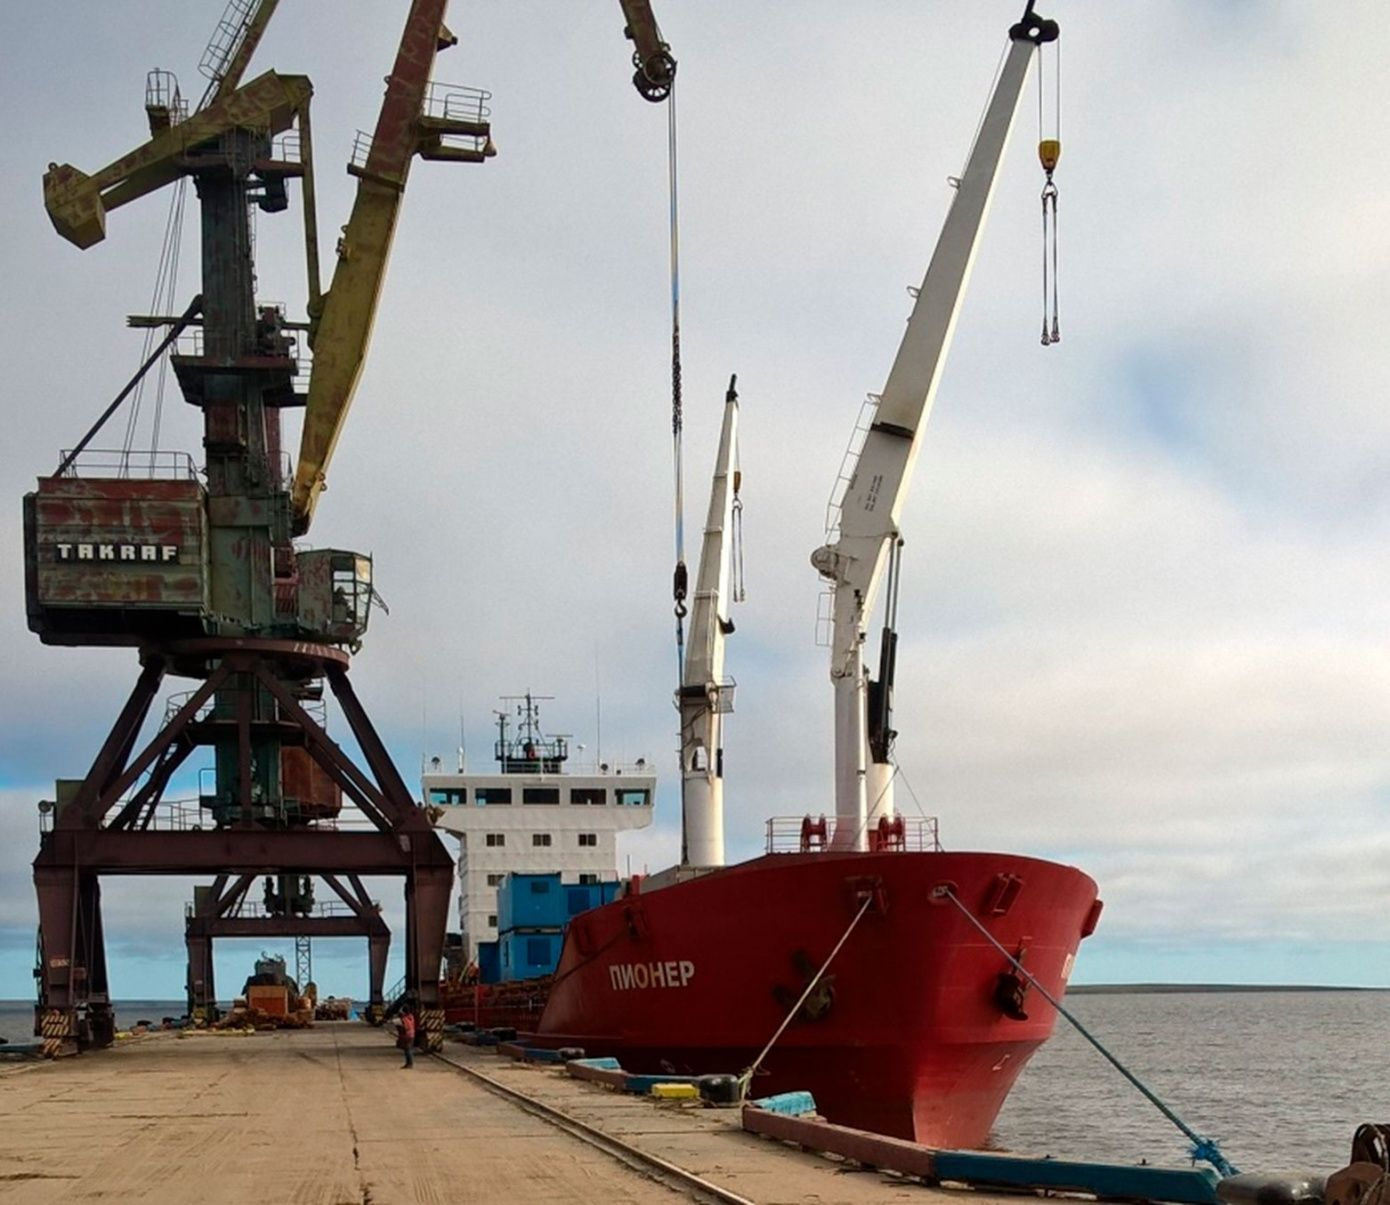 Dry cargo ship Pioner arrived at Tiksi from Murmansk via Northern sea route